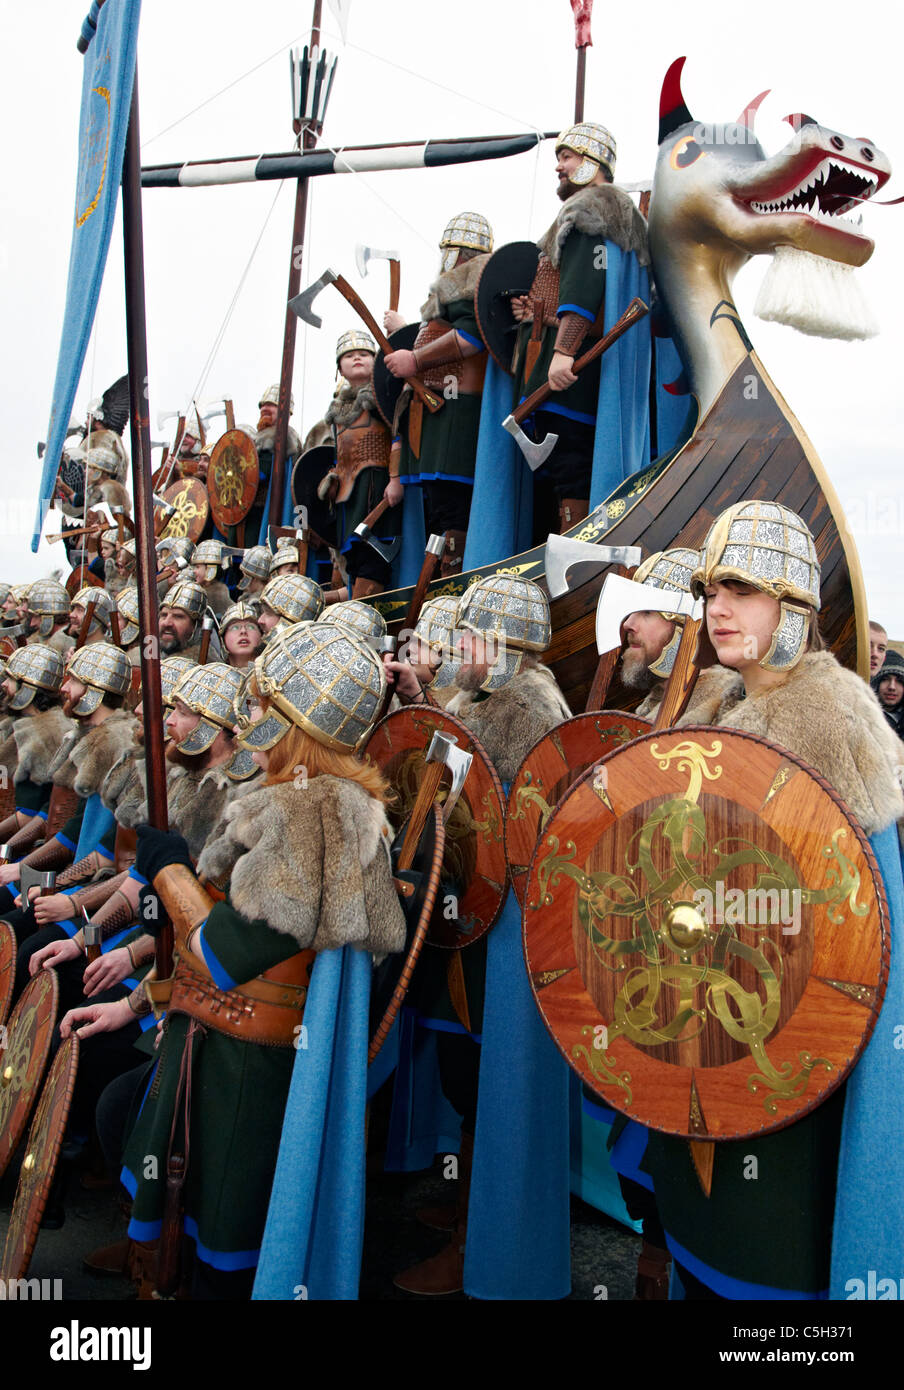 Vikings On A Longboat at the Up Helly Aa Fire Festival Shetland Islands - Stock Image